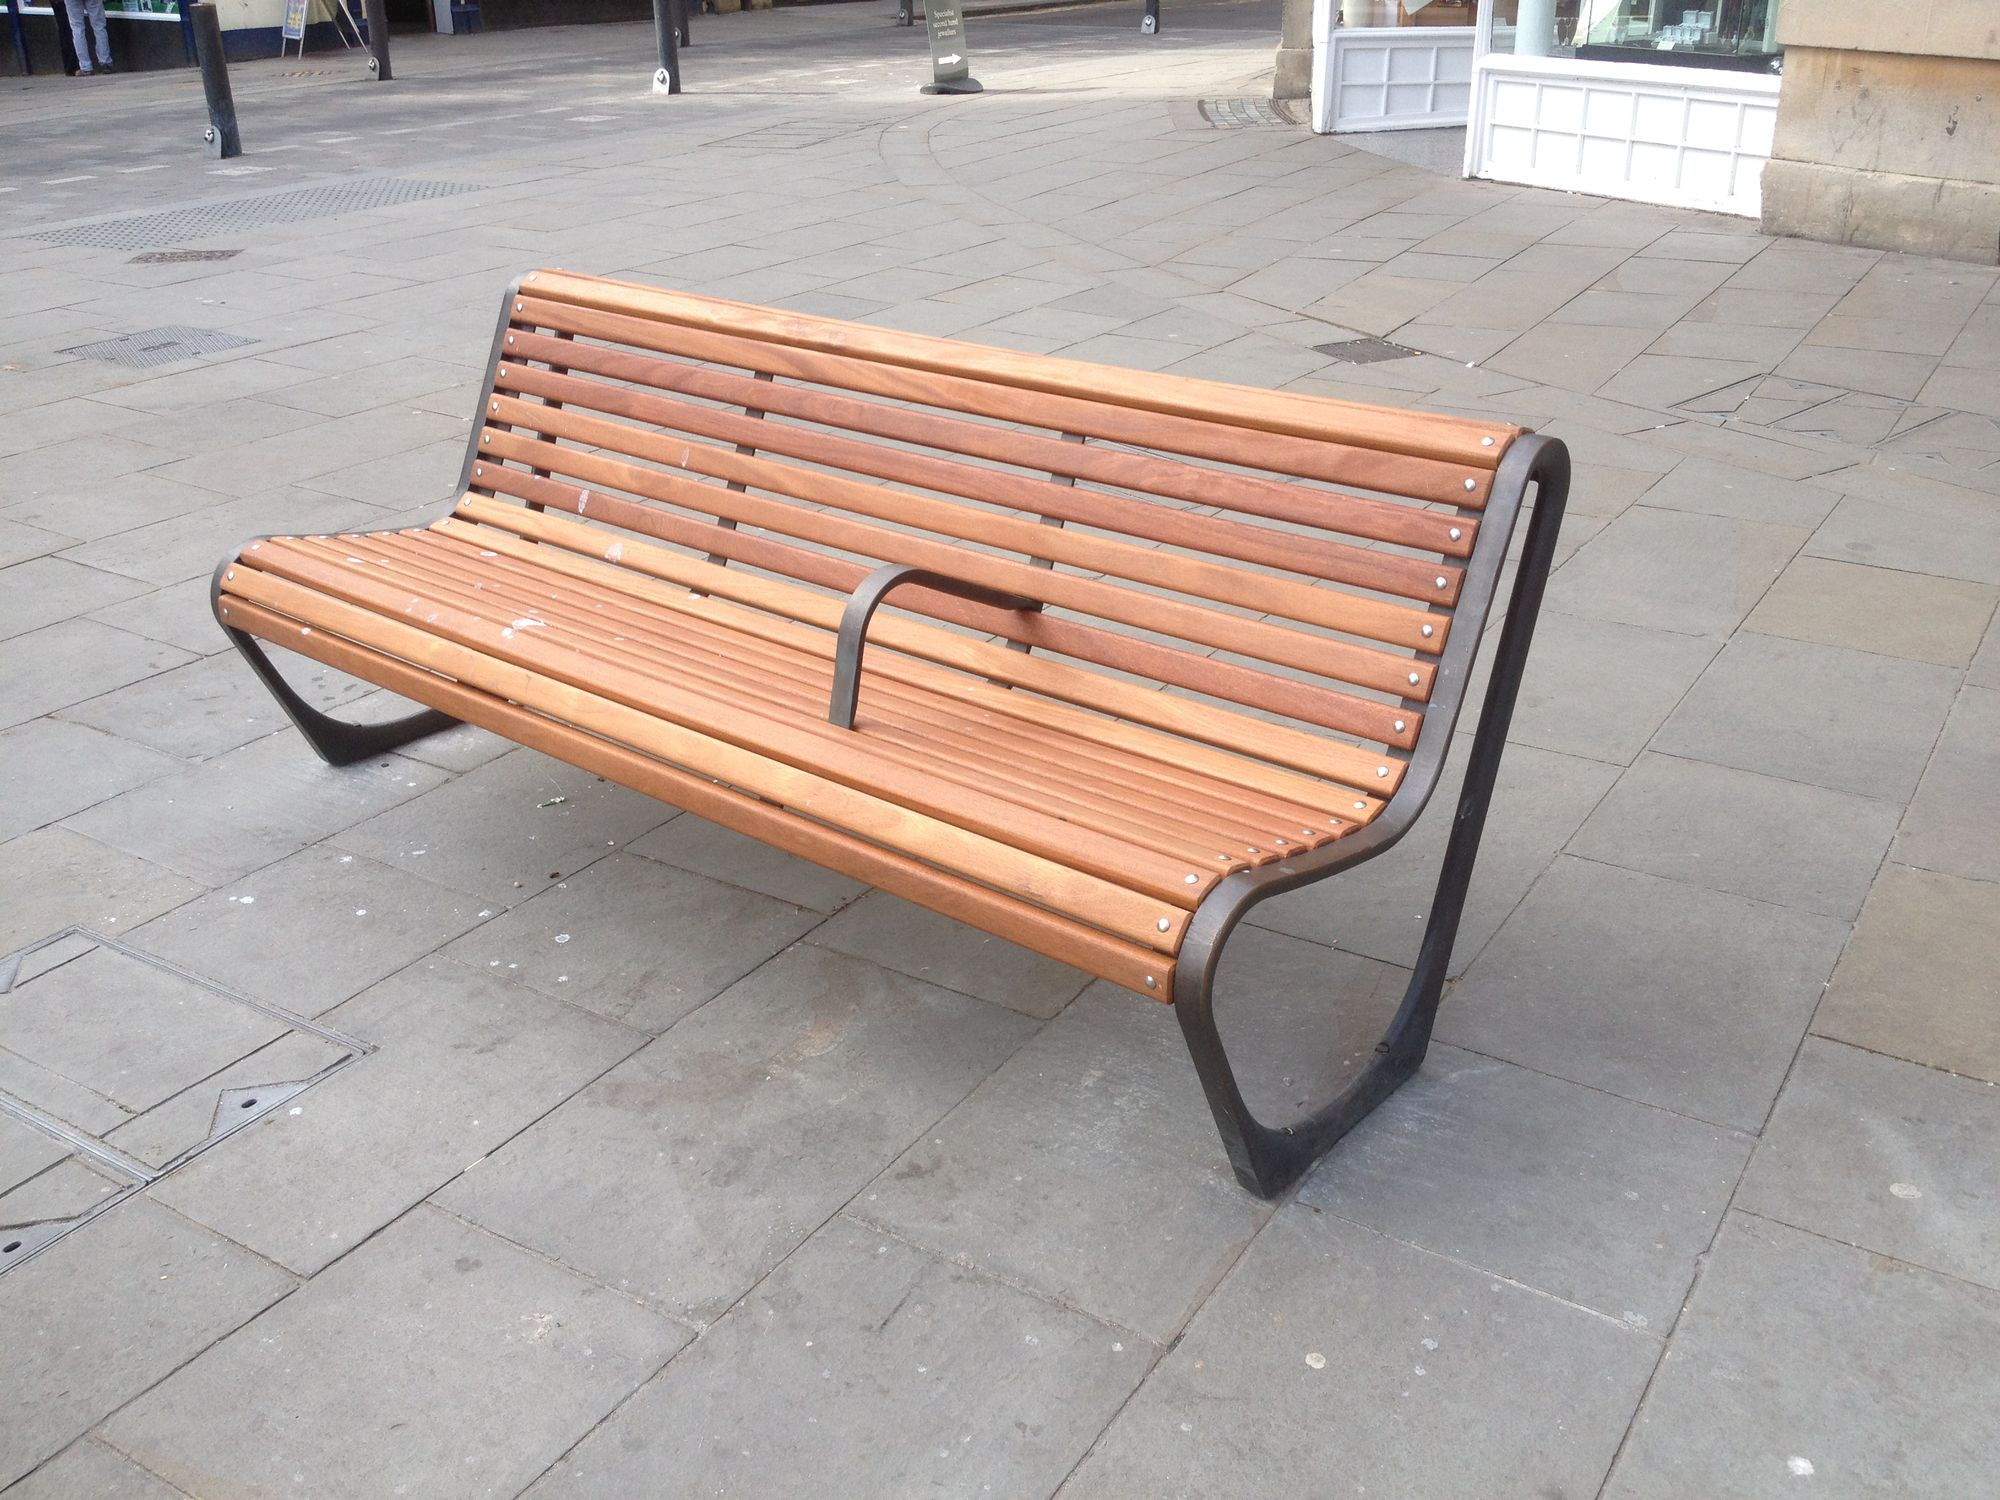 ... Public bench / contemporary / wooden / cast iron CITY OF BATH Factory Street  Furniture ...